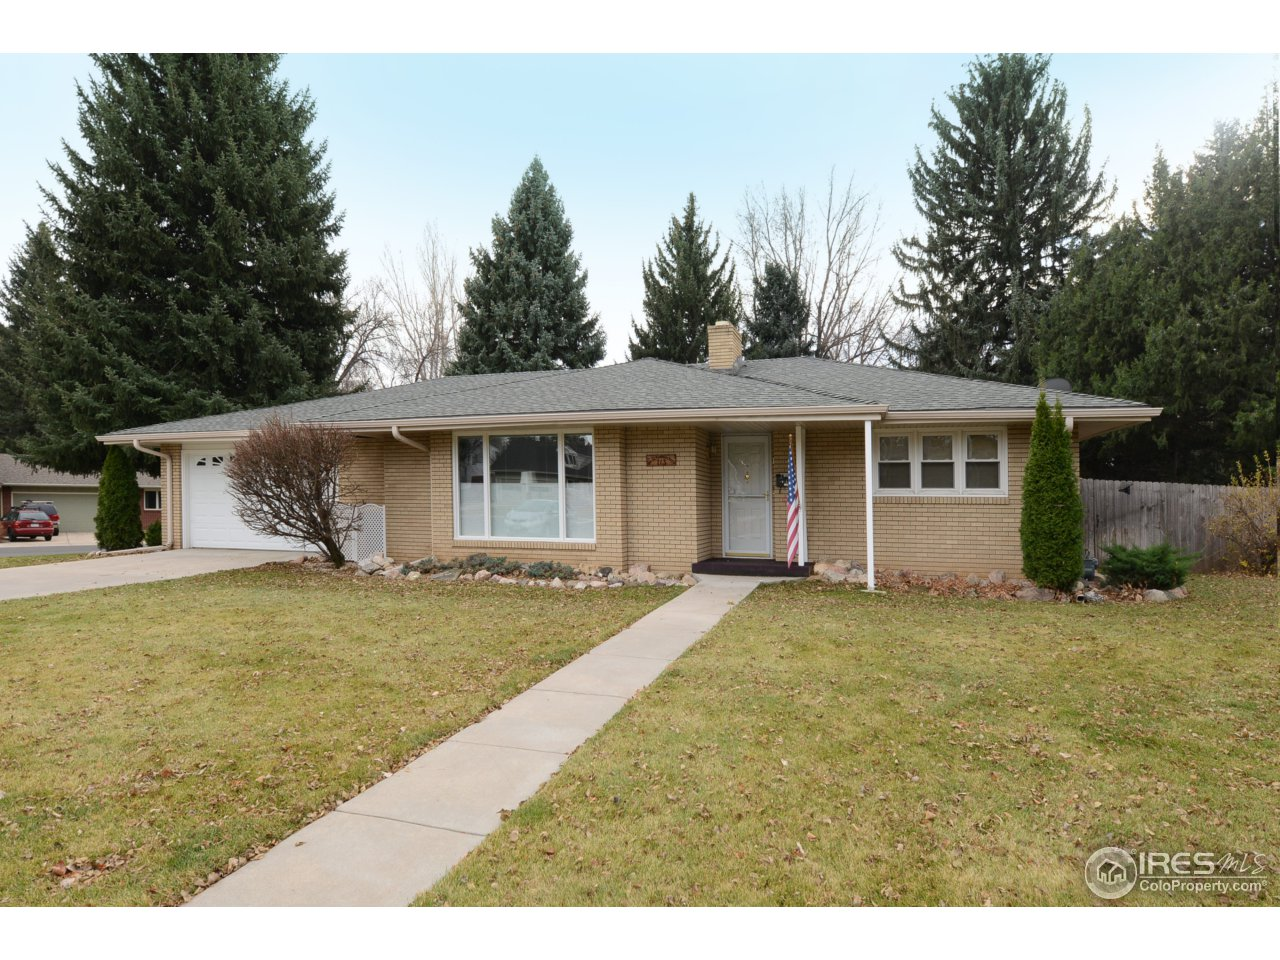 713 Garfield St, Fort Collins CO 80524